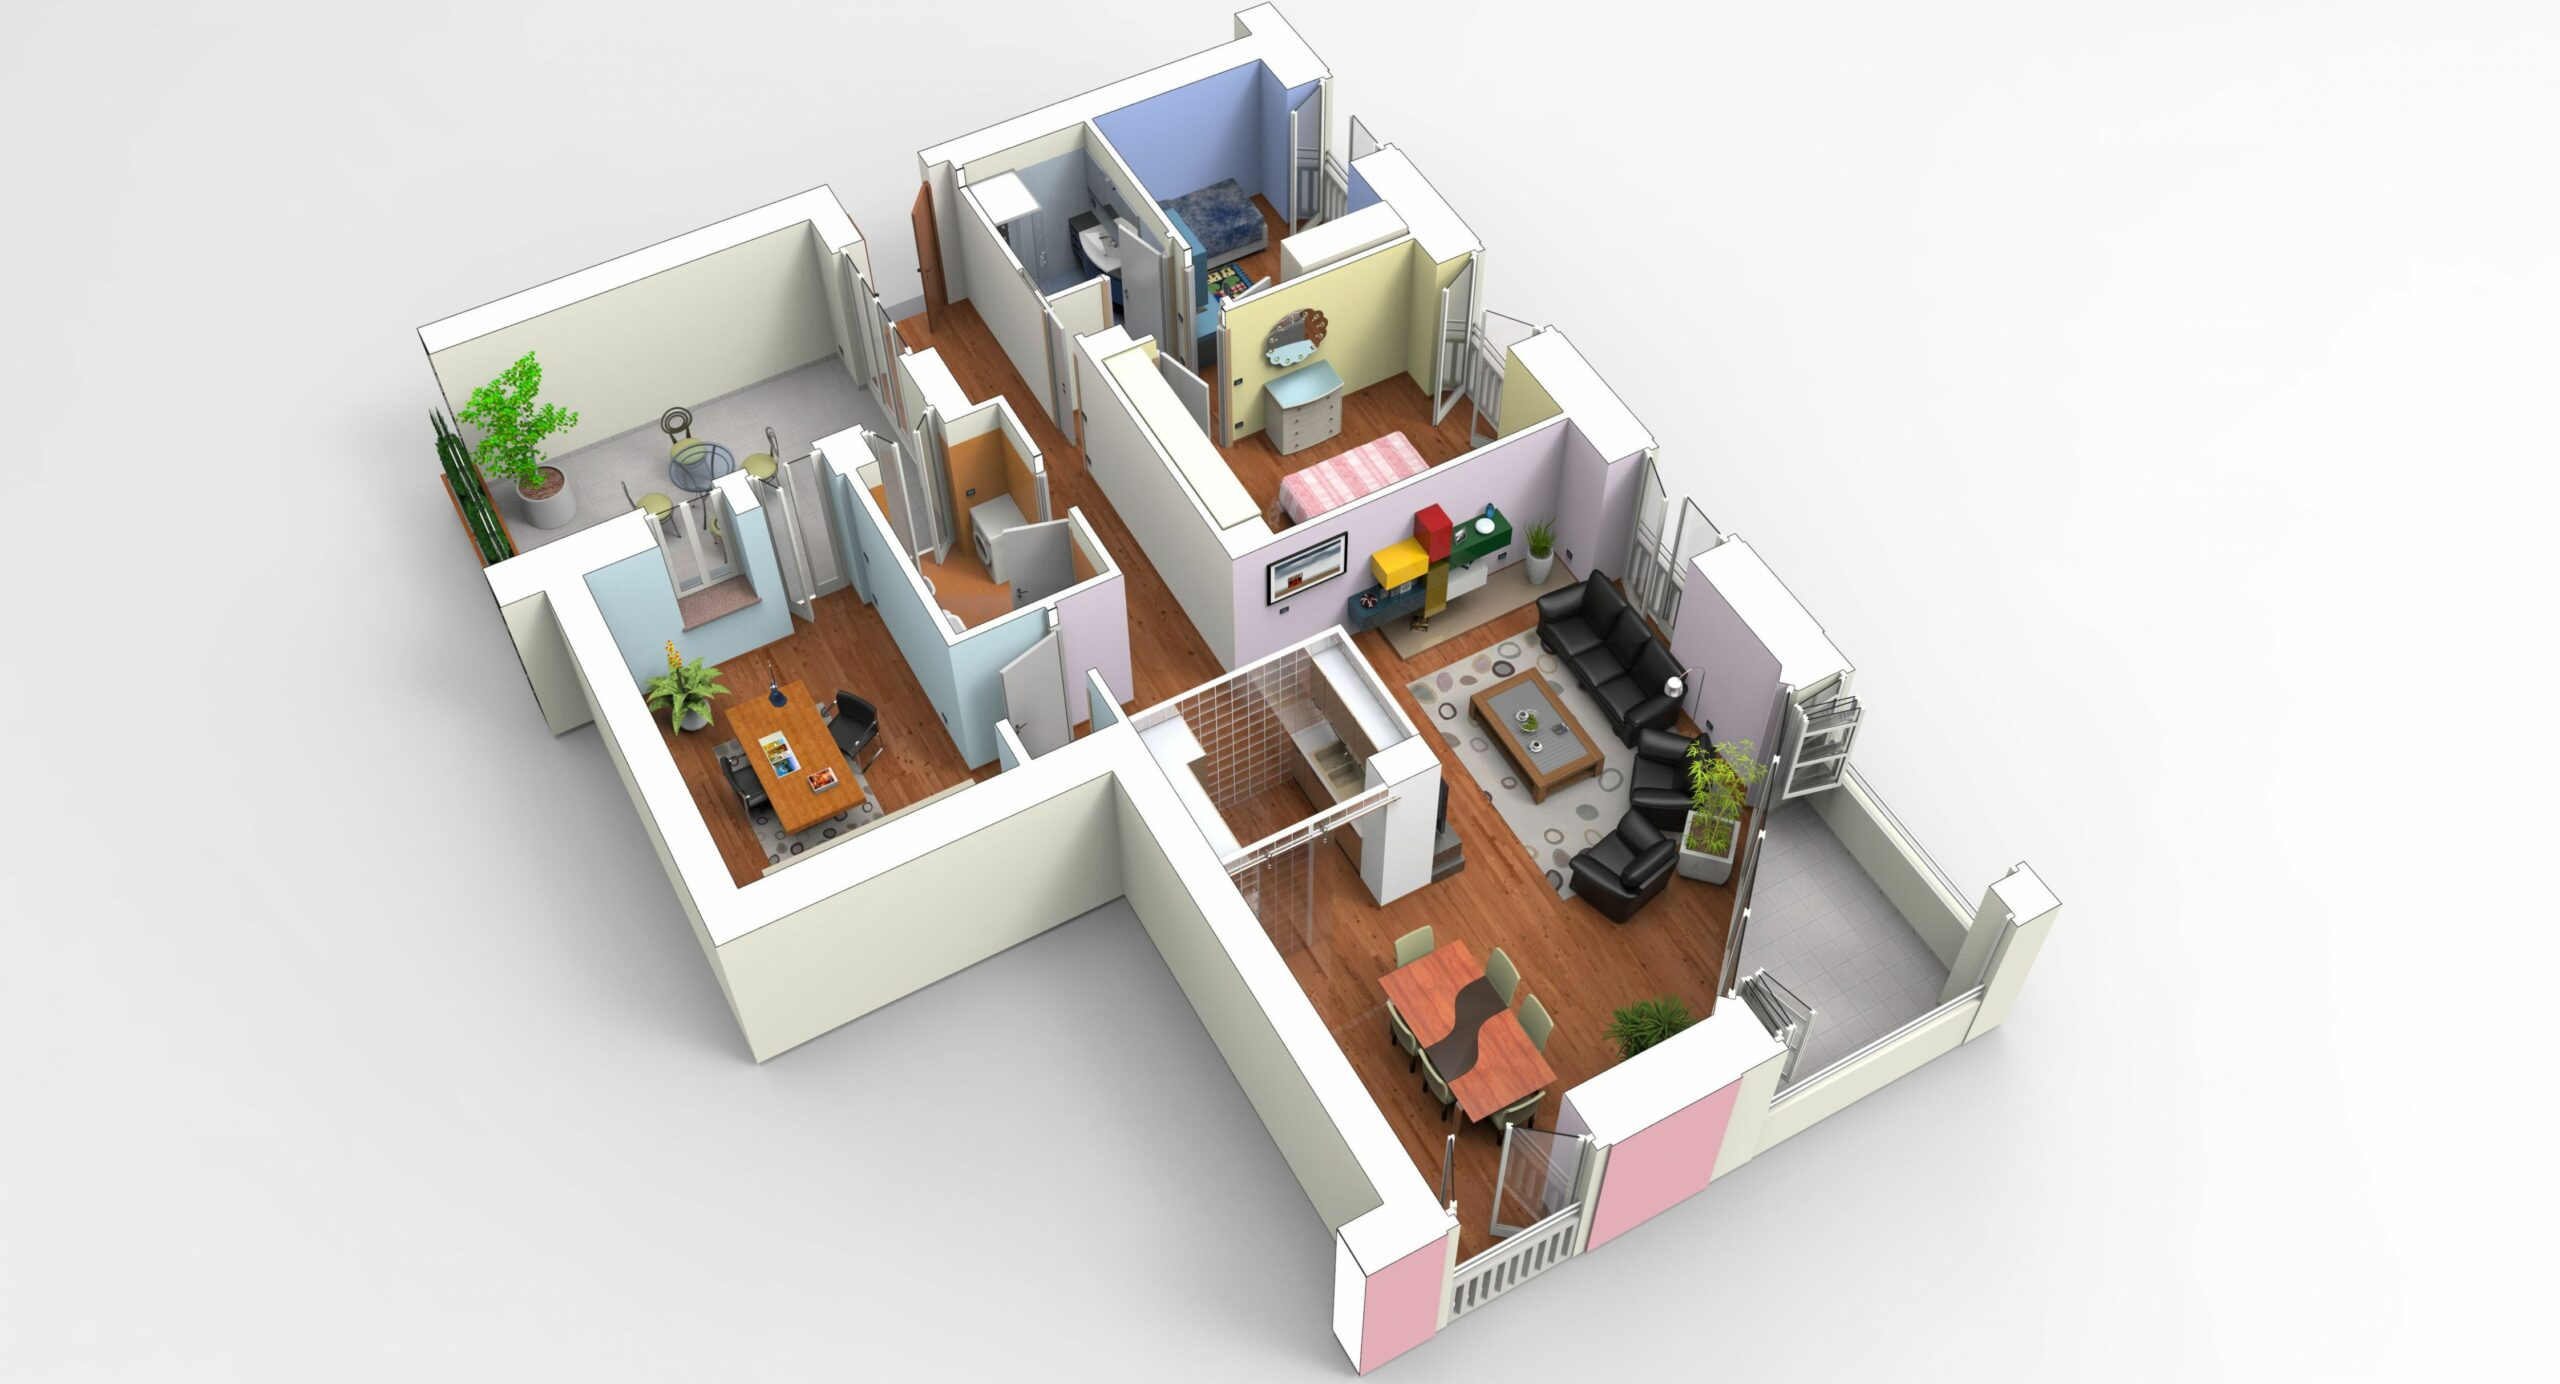 Interior apartment modeled in MoI, furniture in SketchUp and ...